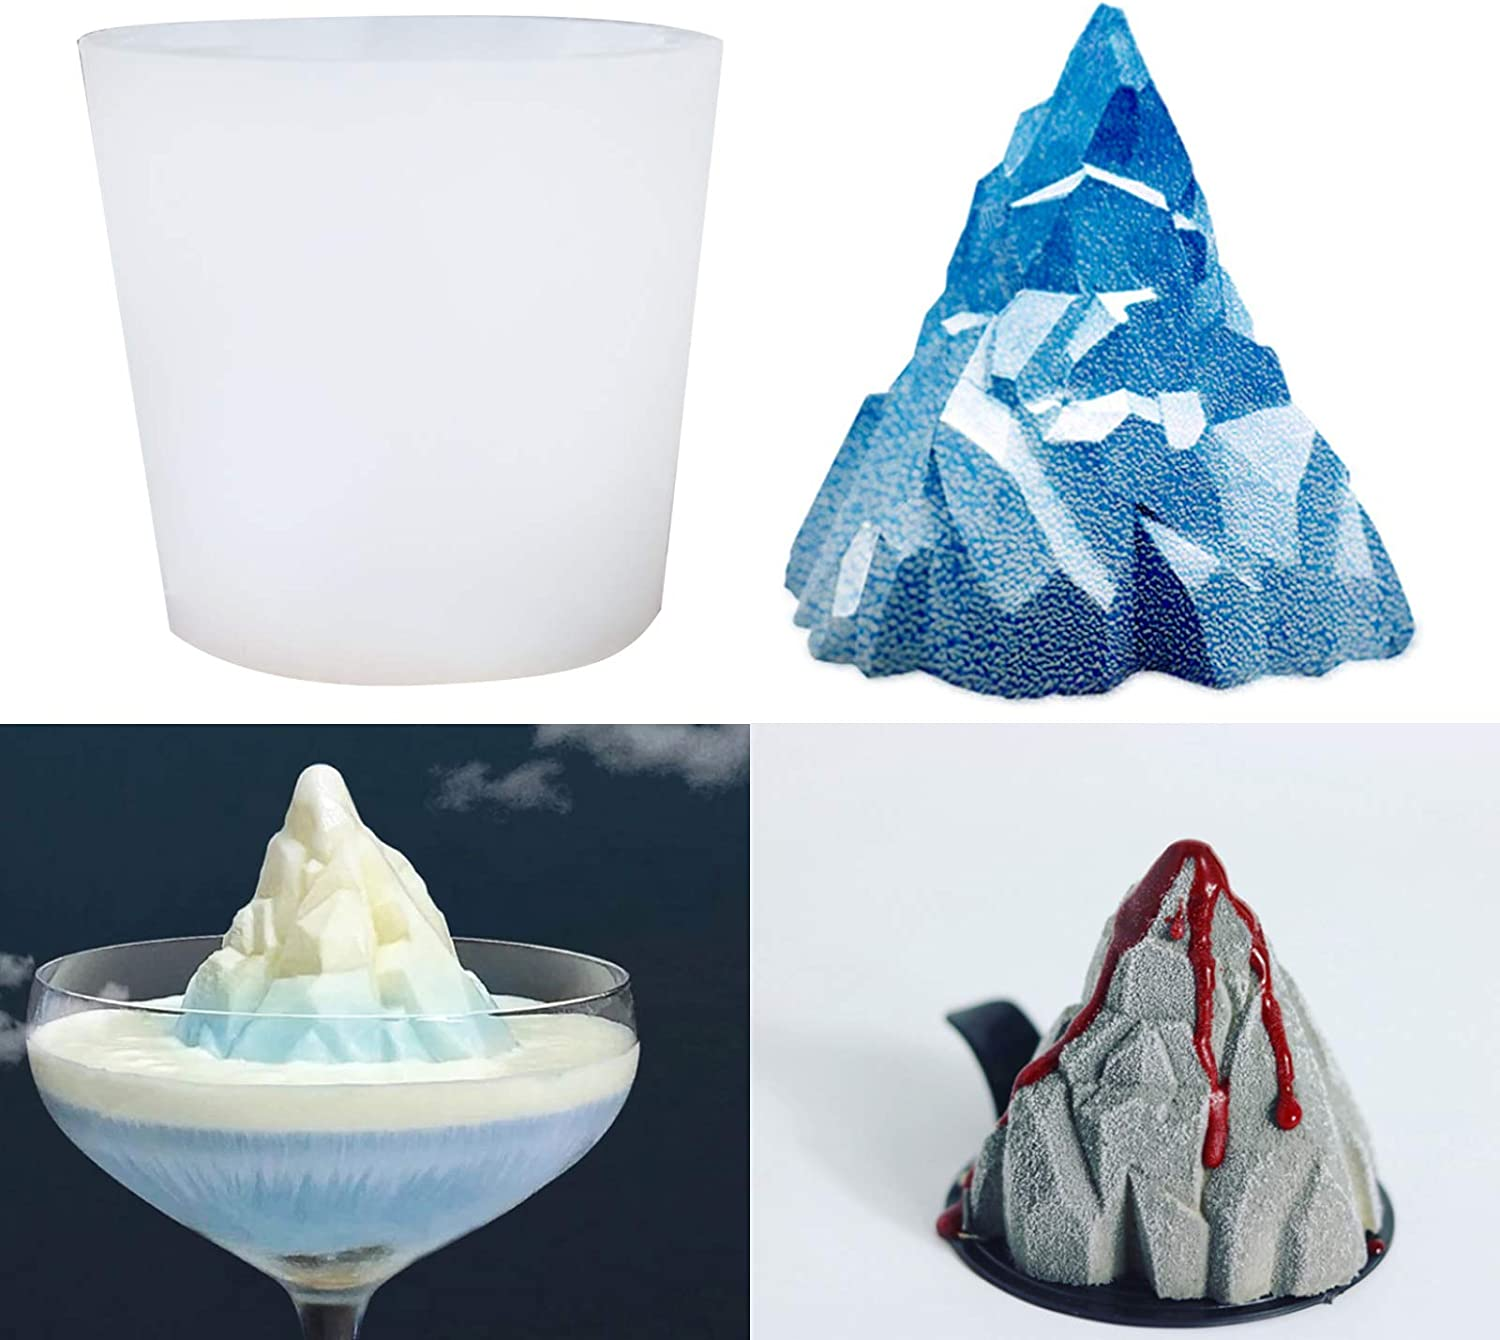 Sunsor 3D Snow Mountain Resin Silicone Mold Volcano Casting Mould for Soap Candle Aromatherapy Ice Cube Home Decoration Crafts